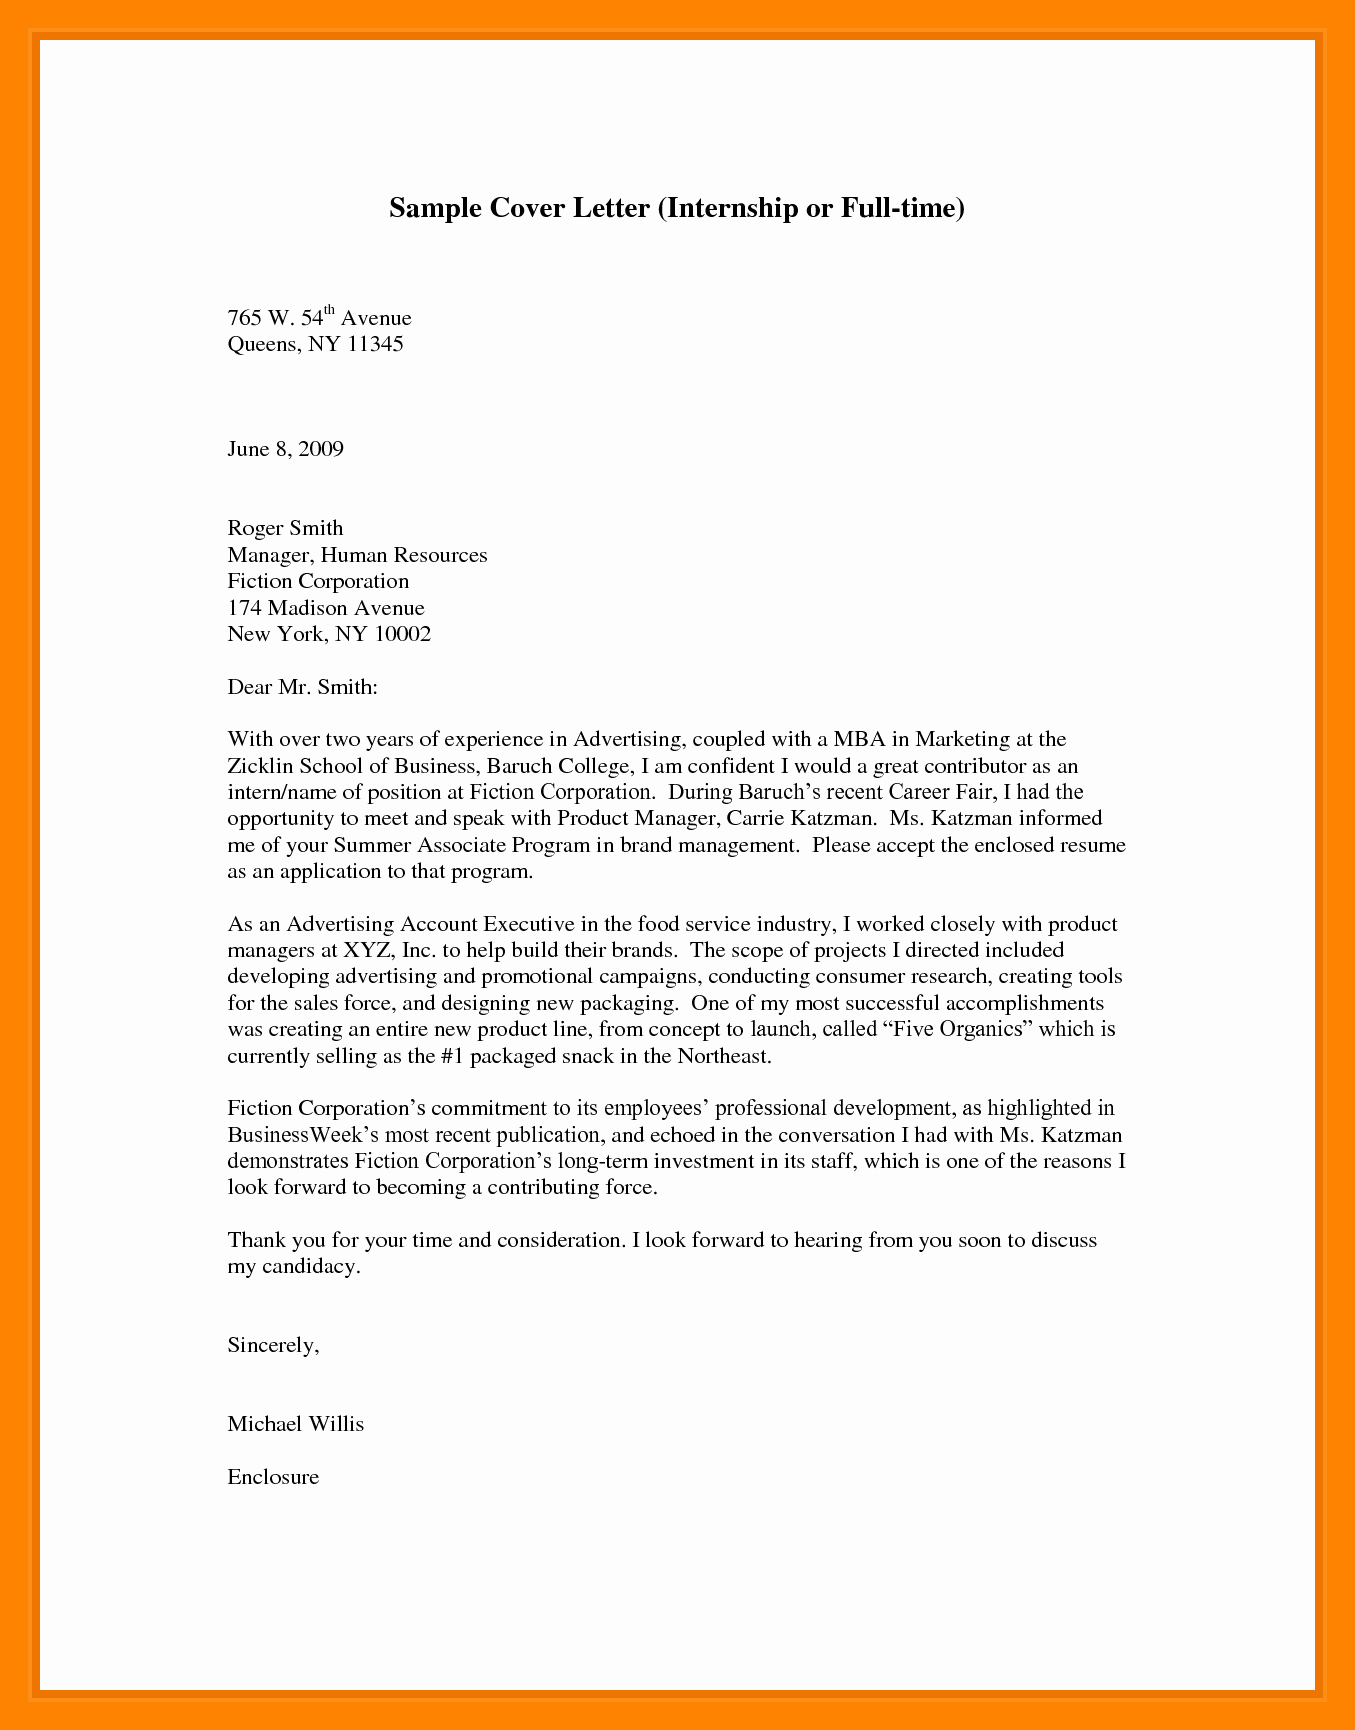 Letter Of Inquiry Template Best Of 5 Letter Of Inquiry Samples